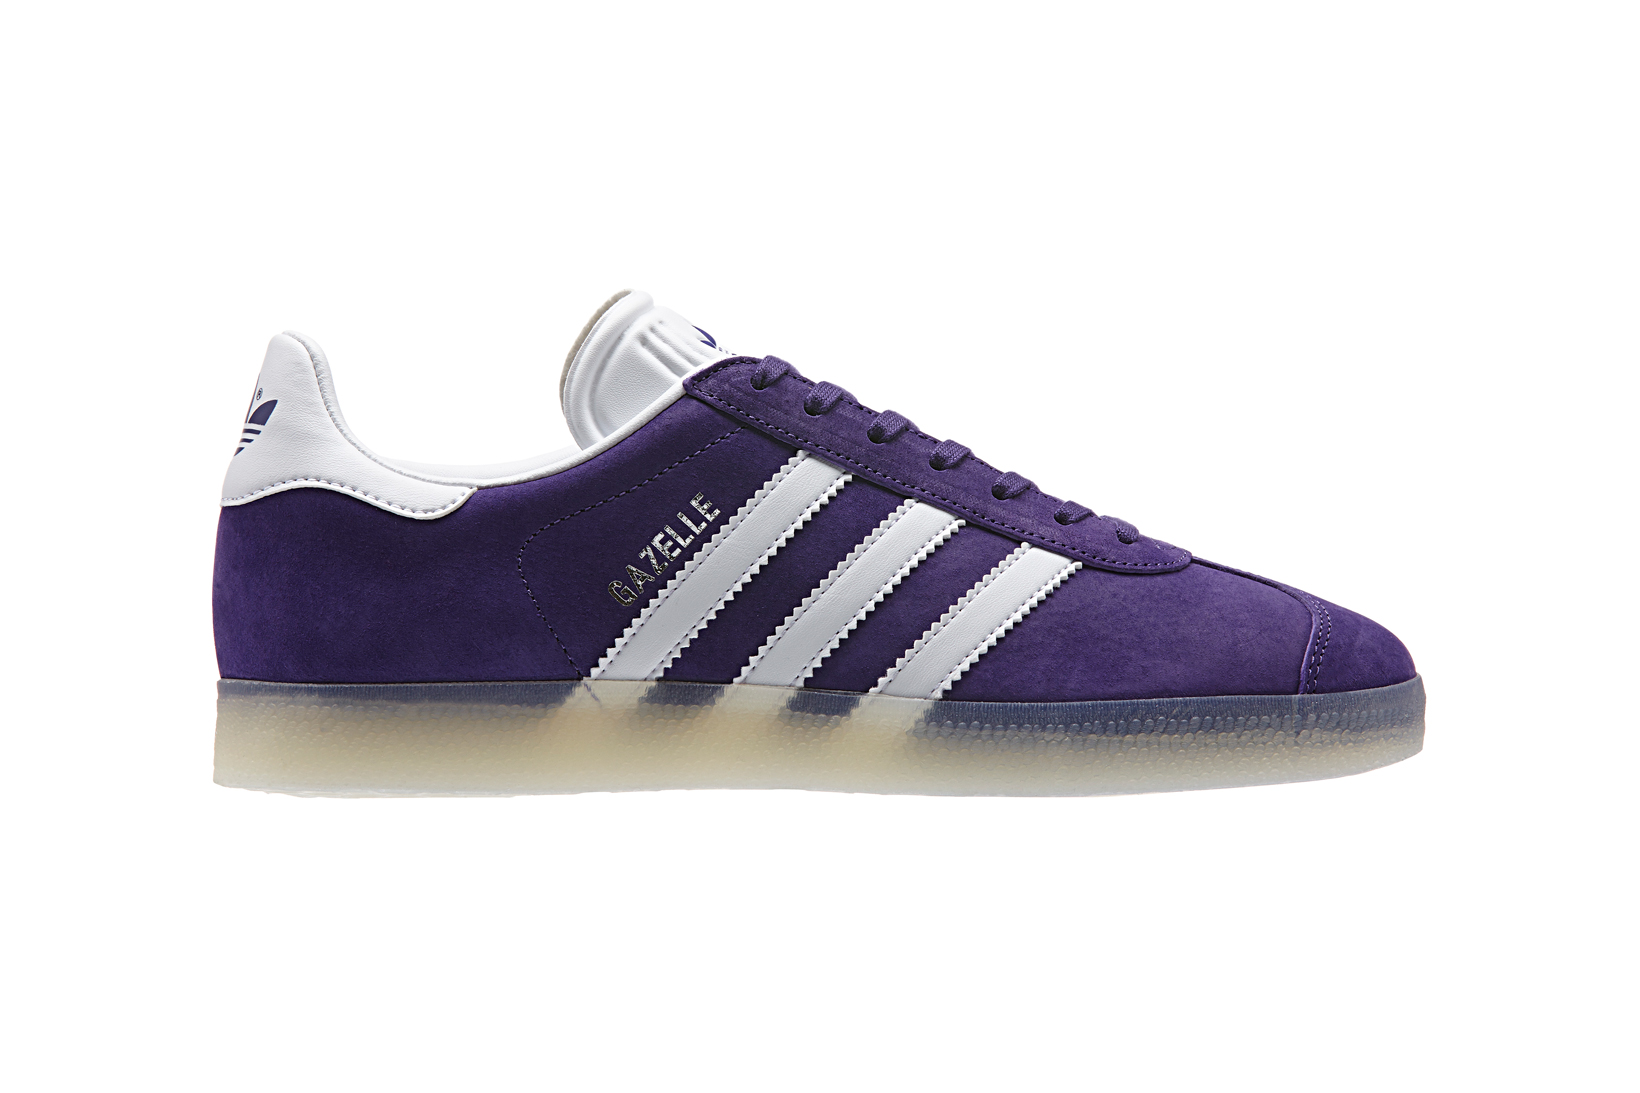 adidas Originals Gazelle Iced Pack